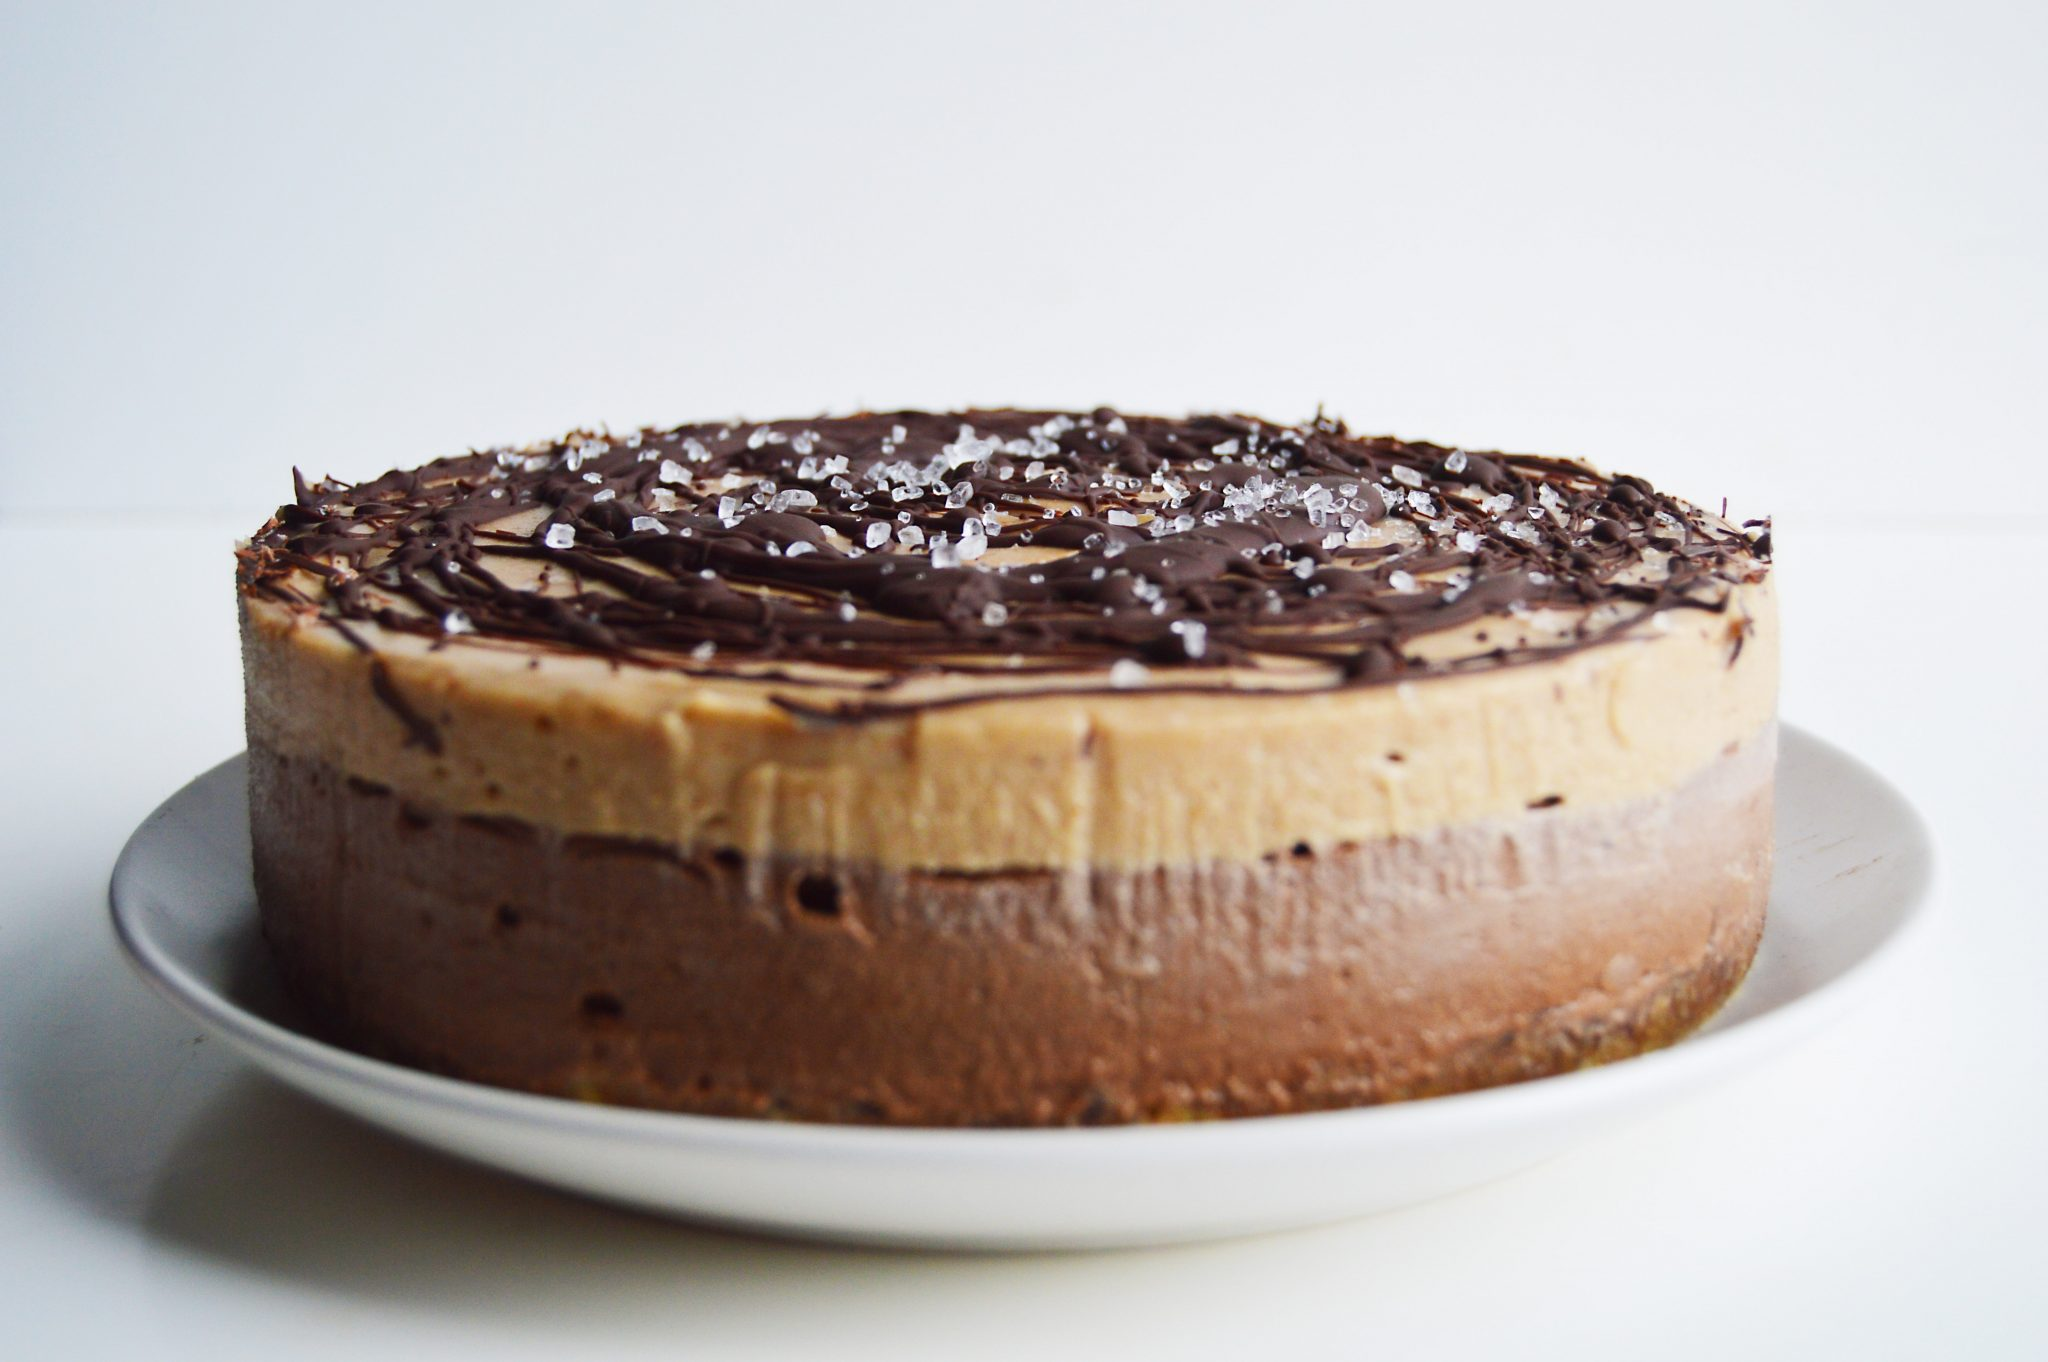 Easy Chocolate Salted Caramel Cake